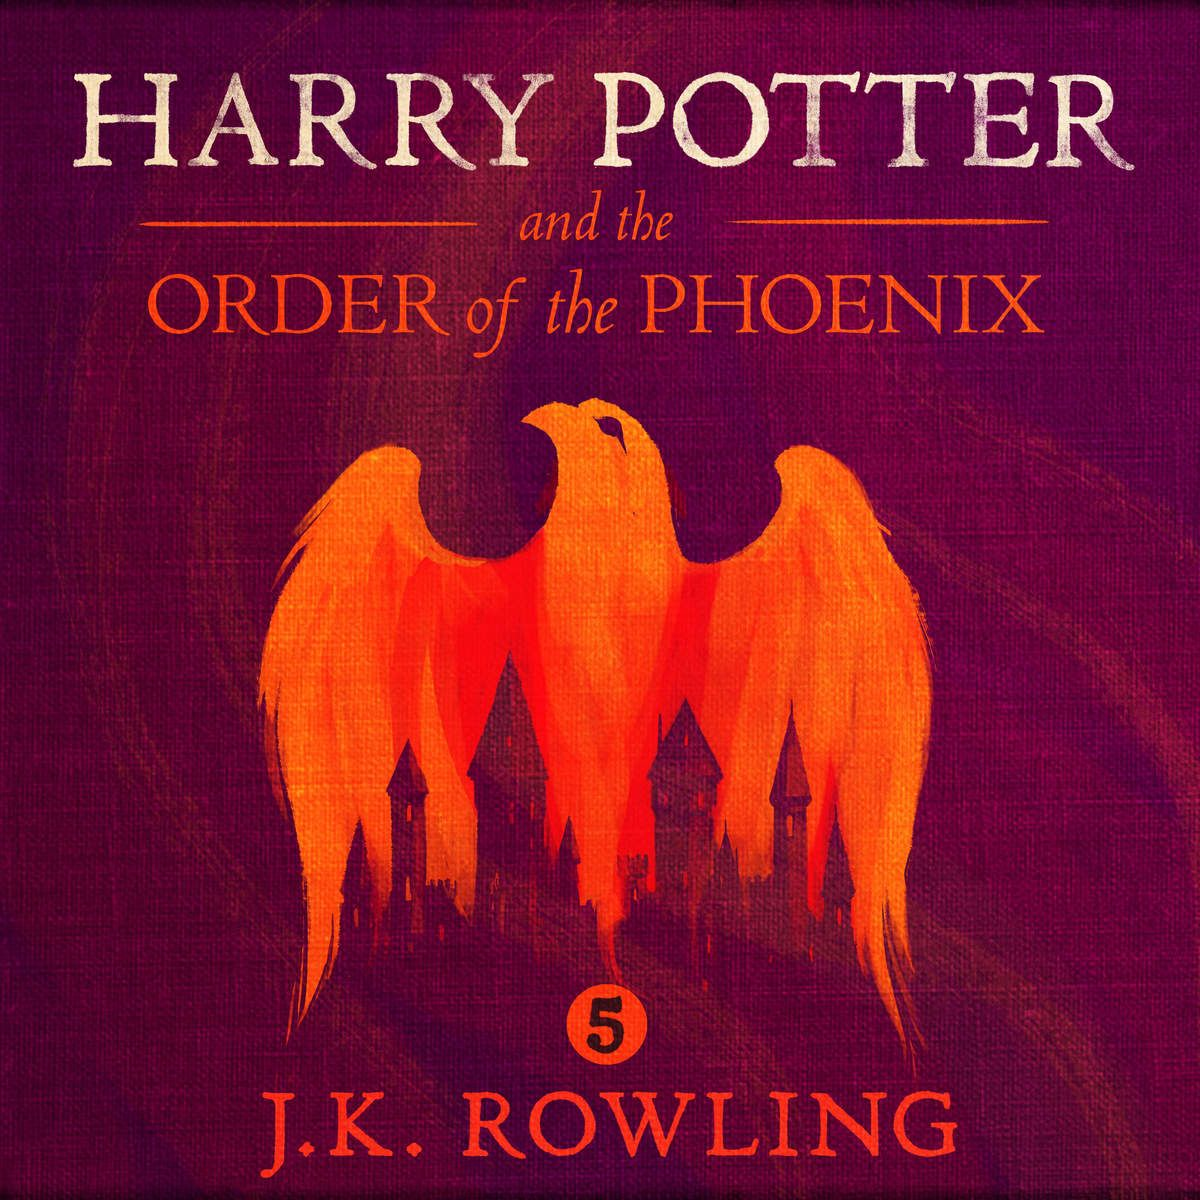 harry potter audiobook cover audible - Google Search | Books Worth